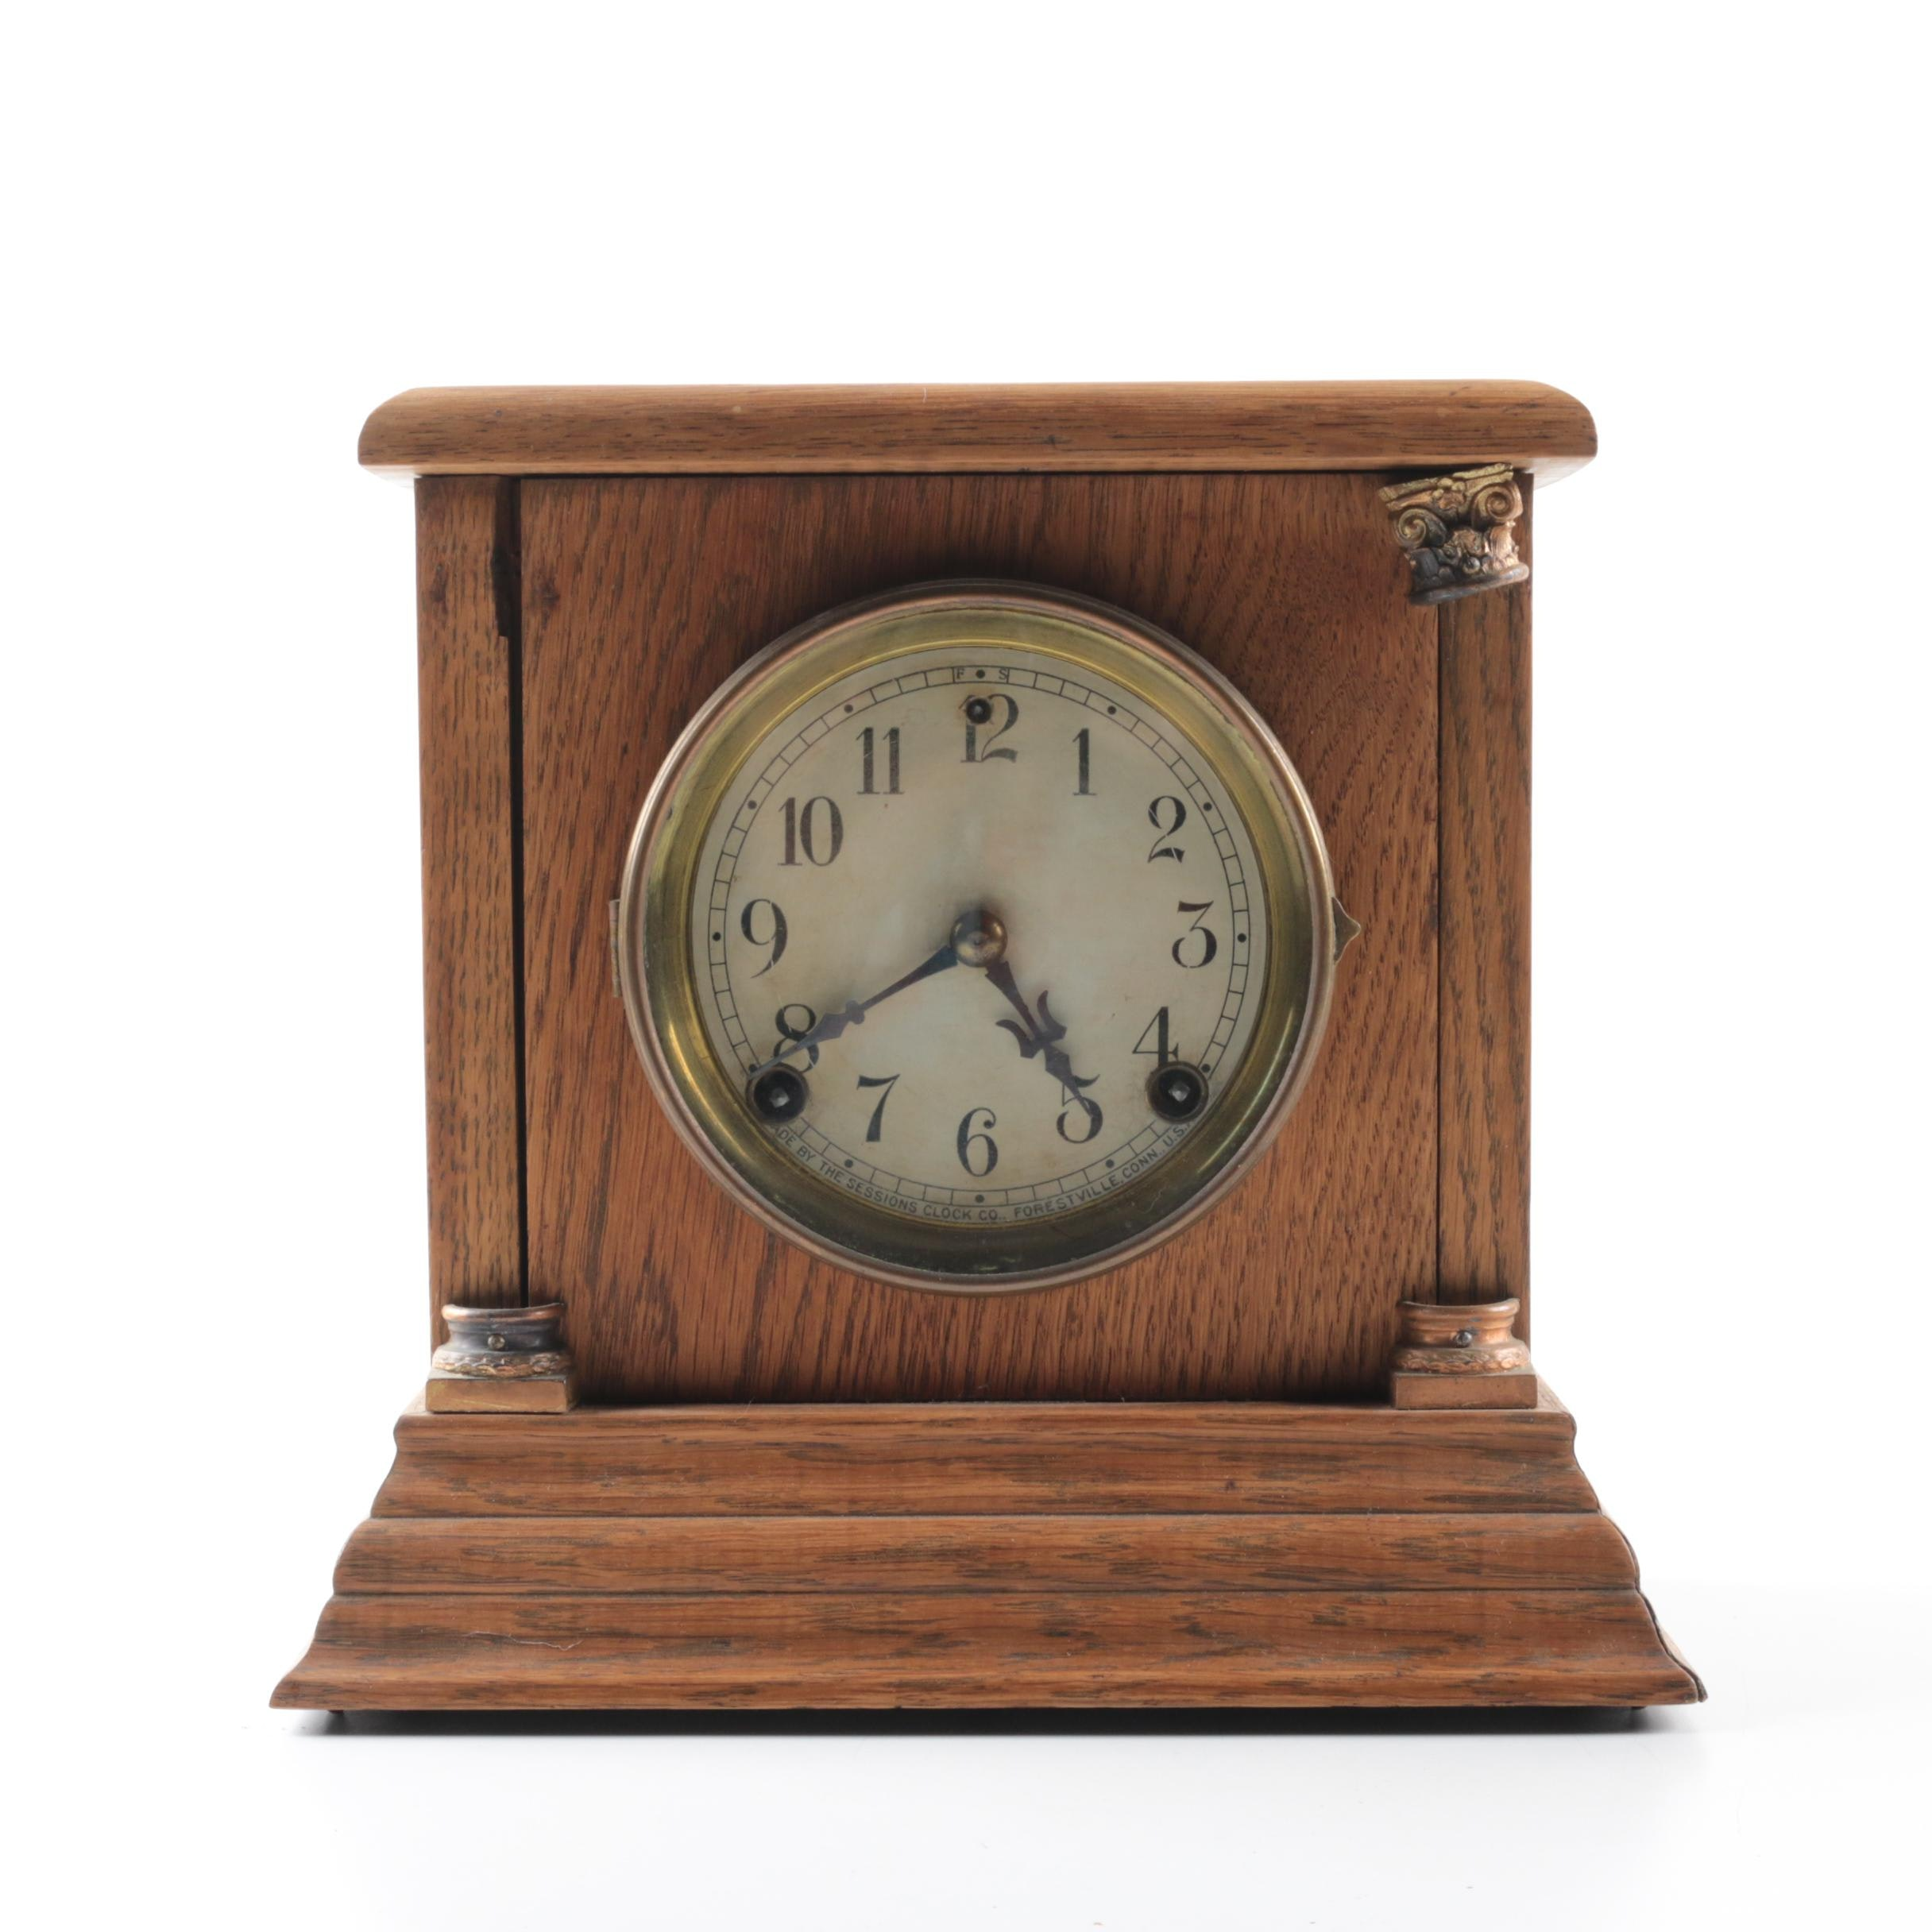 Session Clock Co. Oak Mission Style Mantel Clock